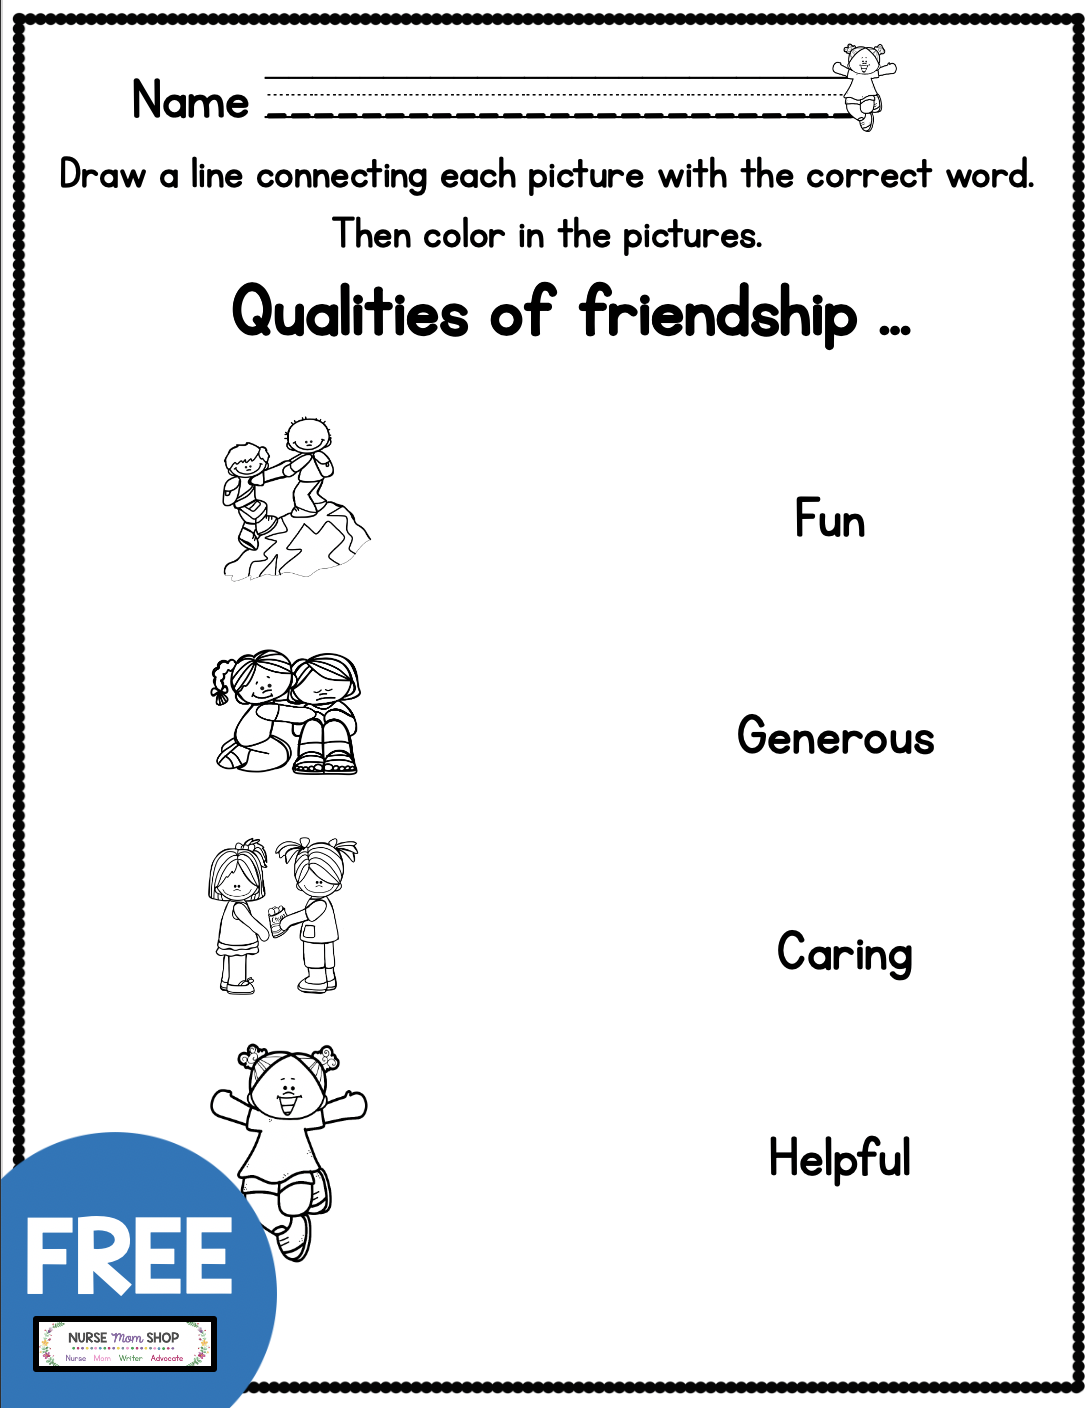 Free Friendship Tools Printables